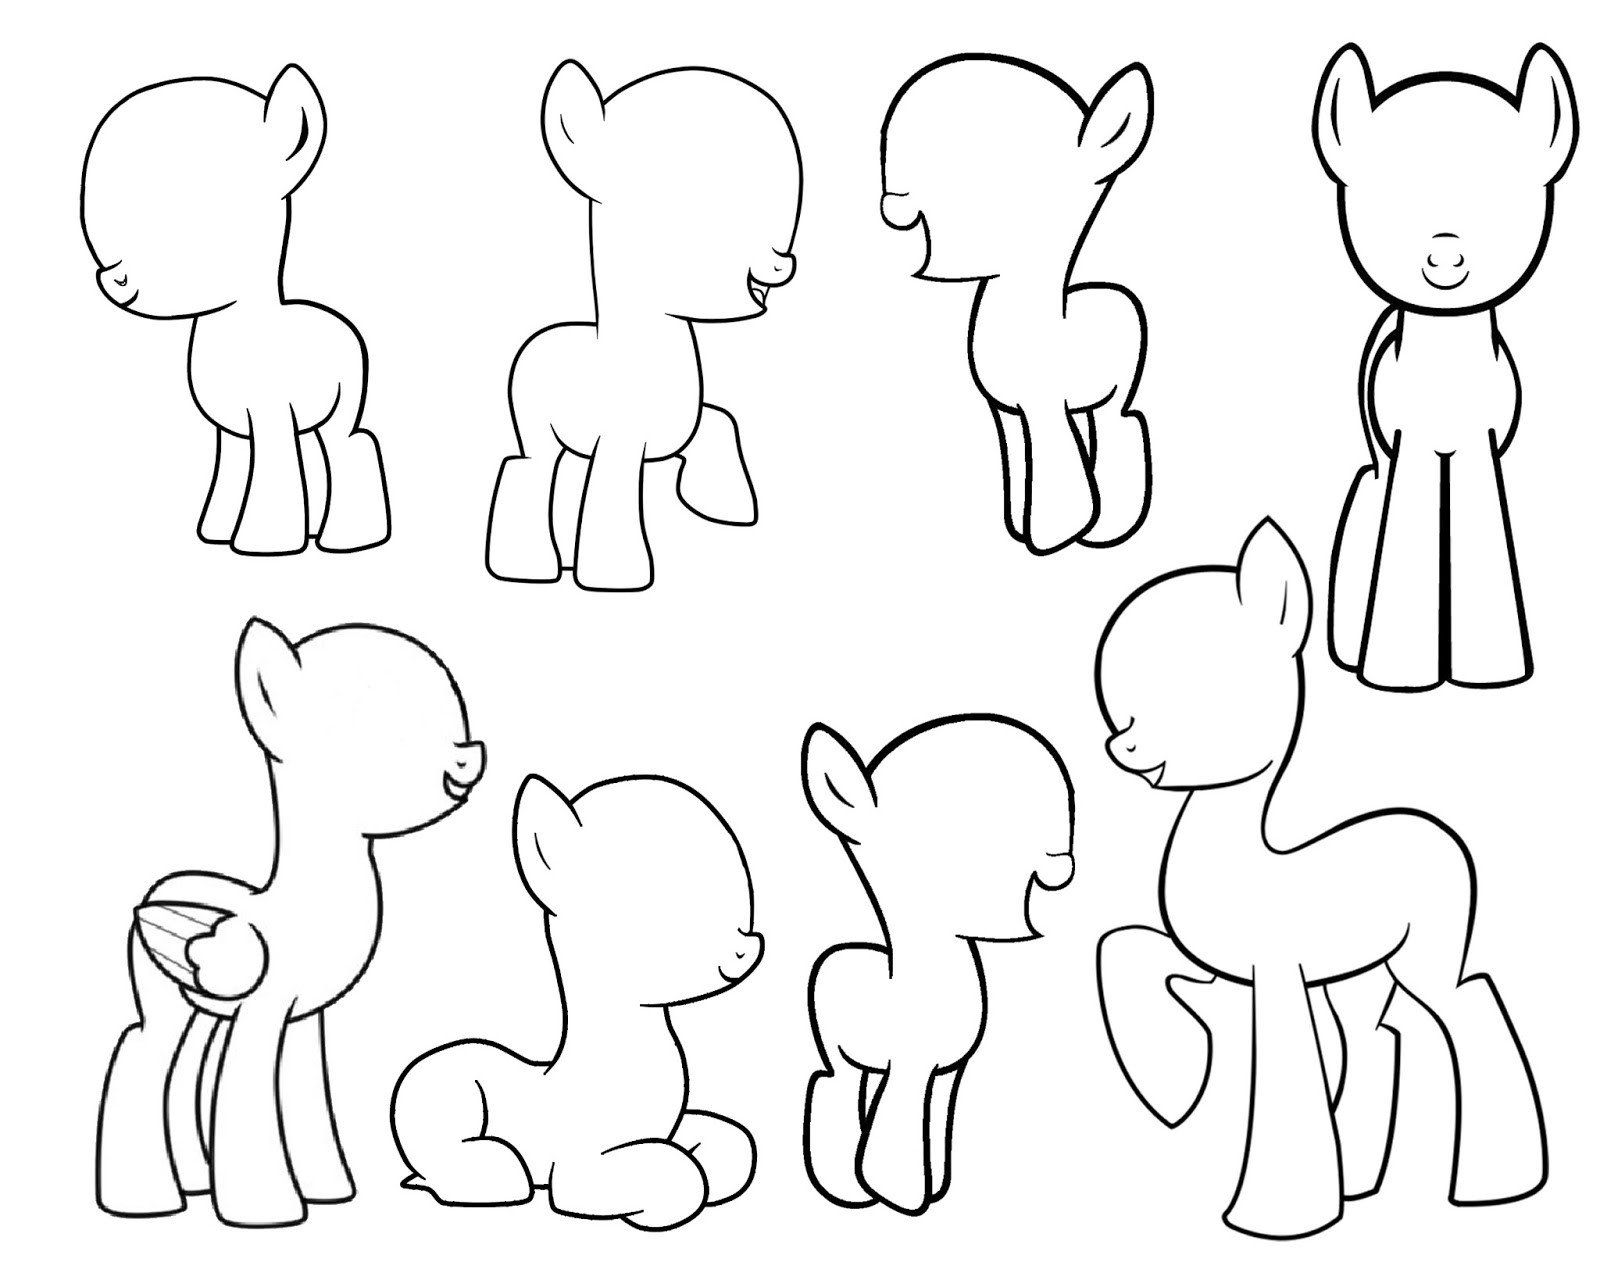 Blank My Little Pony Template Doodlecraft Design and Draw Your Own My Little Pony